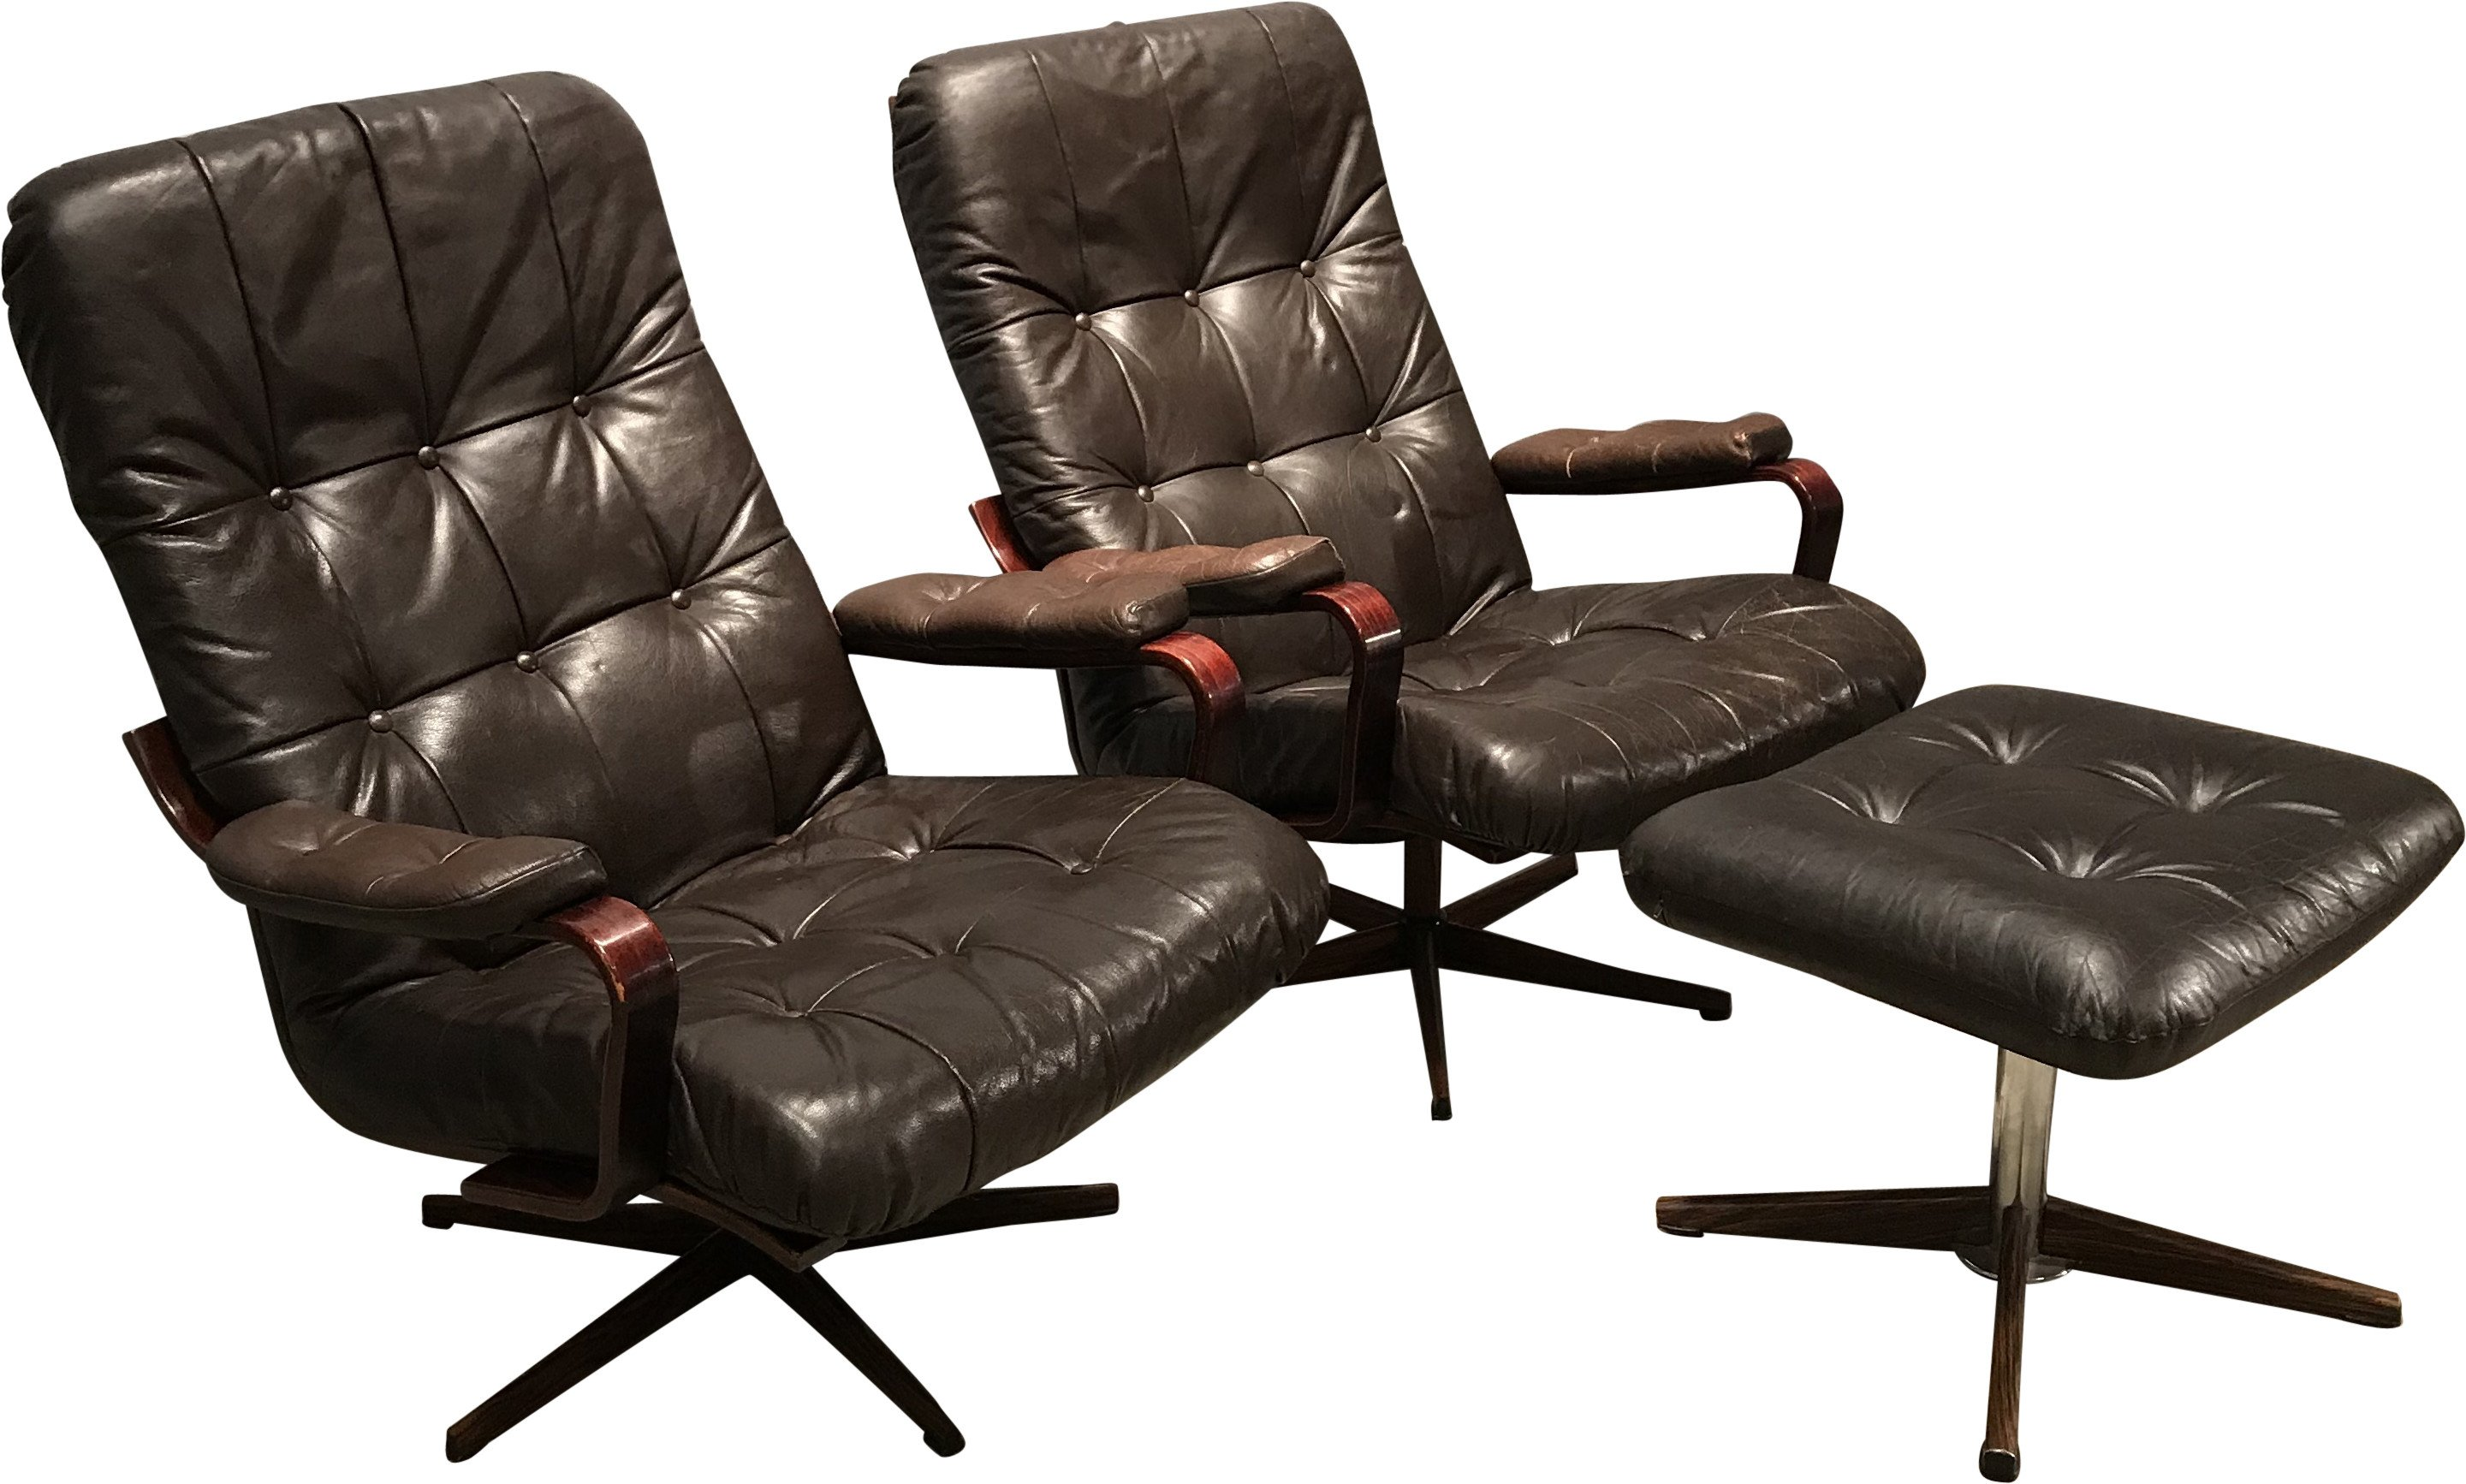 Pair Leather Armchairs with Footstool, Sweden, 1980s